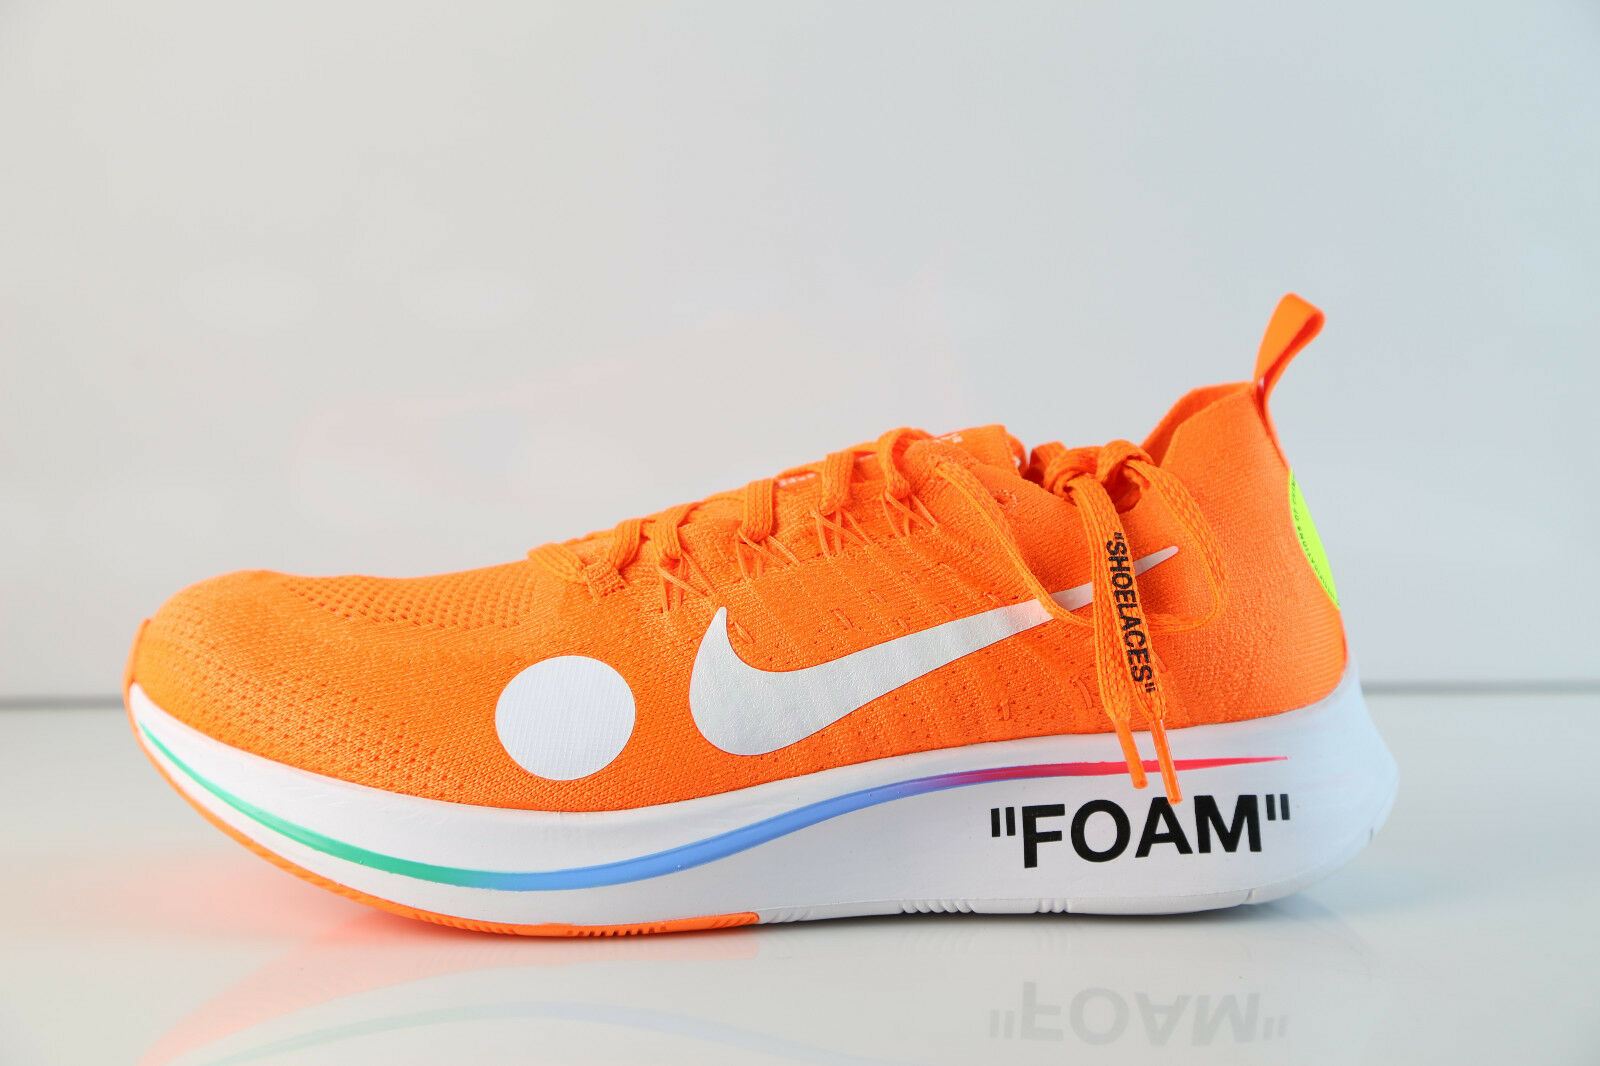 Nike Off-White Virgil Abloh Zoom Fly Mercurial FK Total orange AO2115-800 8-13